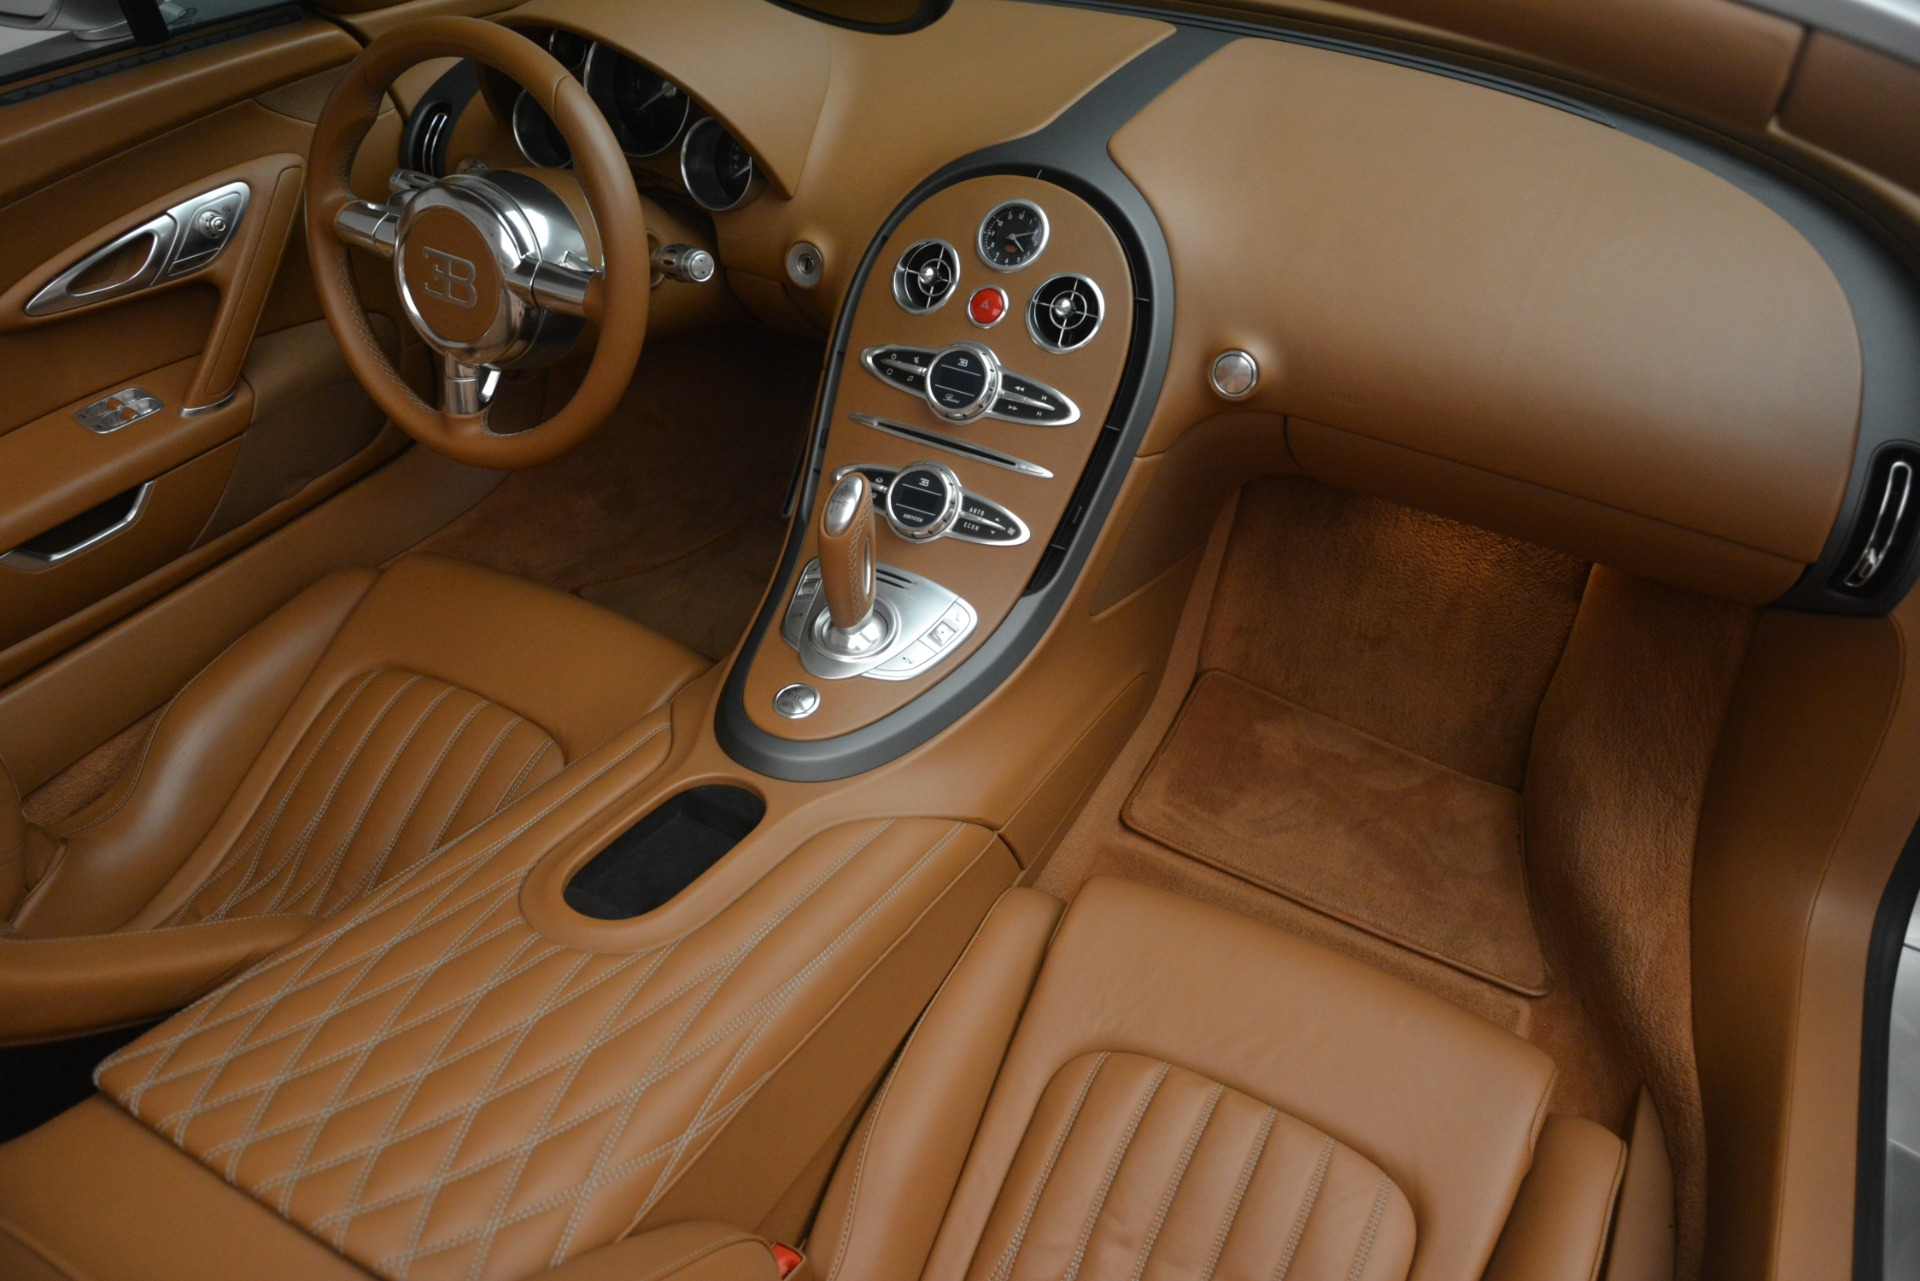 Used 2010 Bugatti Veyron 16.4 Grand Sport For Sale In Westport, CT 3159_p37